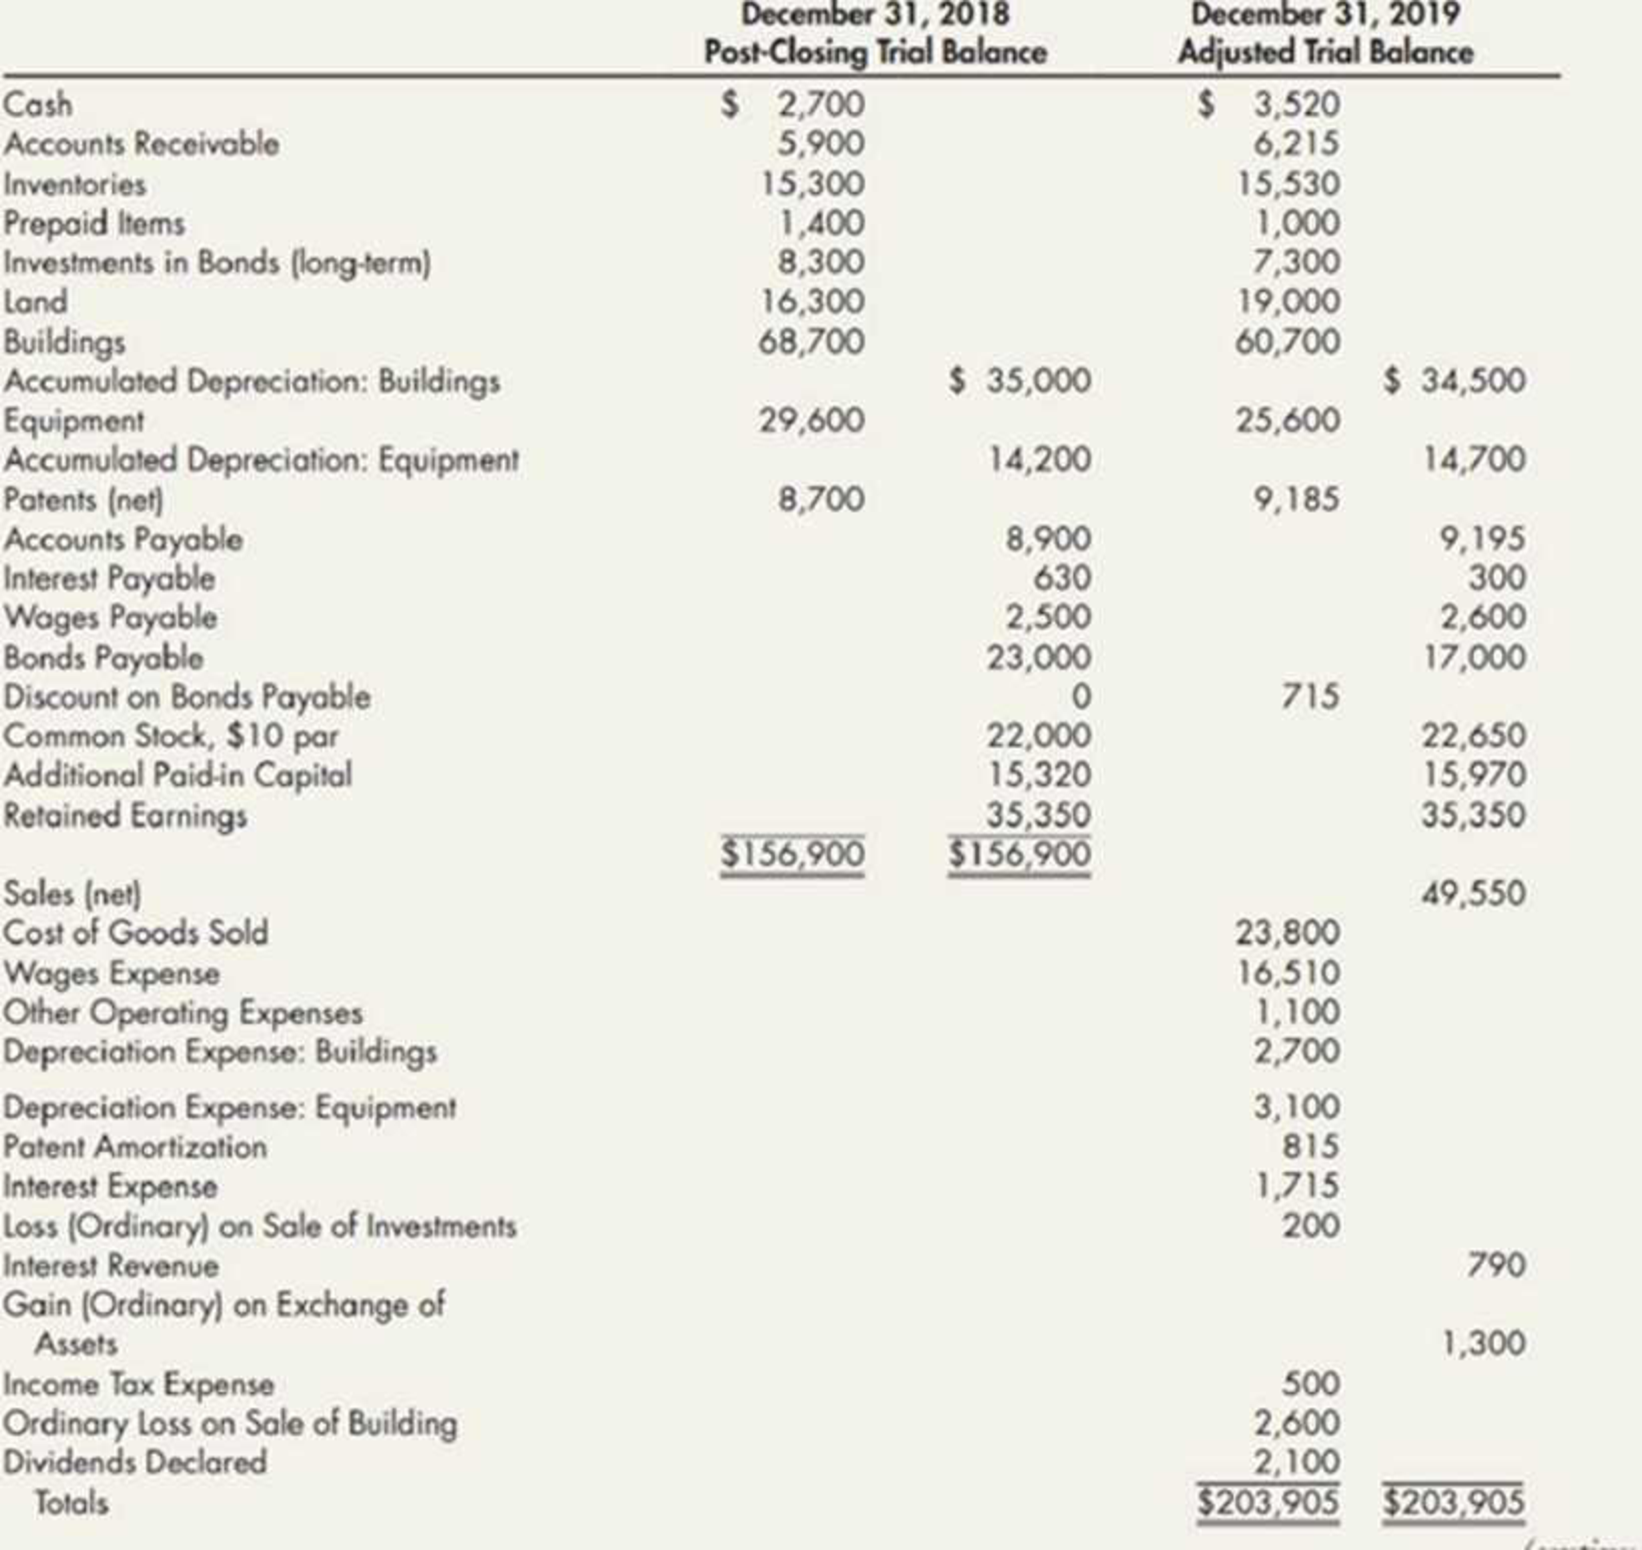 Chapter 21, Problem 18P, Spreadsheet from Trial Balance Heinz Companys post-closing trial balance as of December 31, 2018,